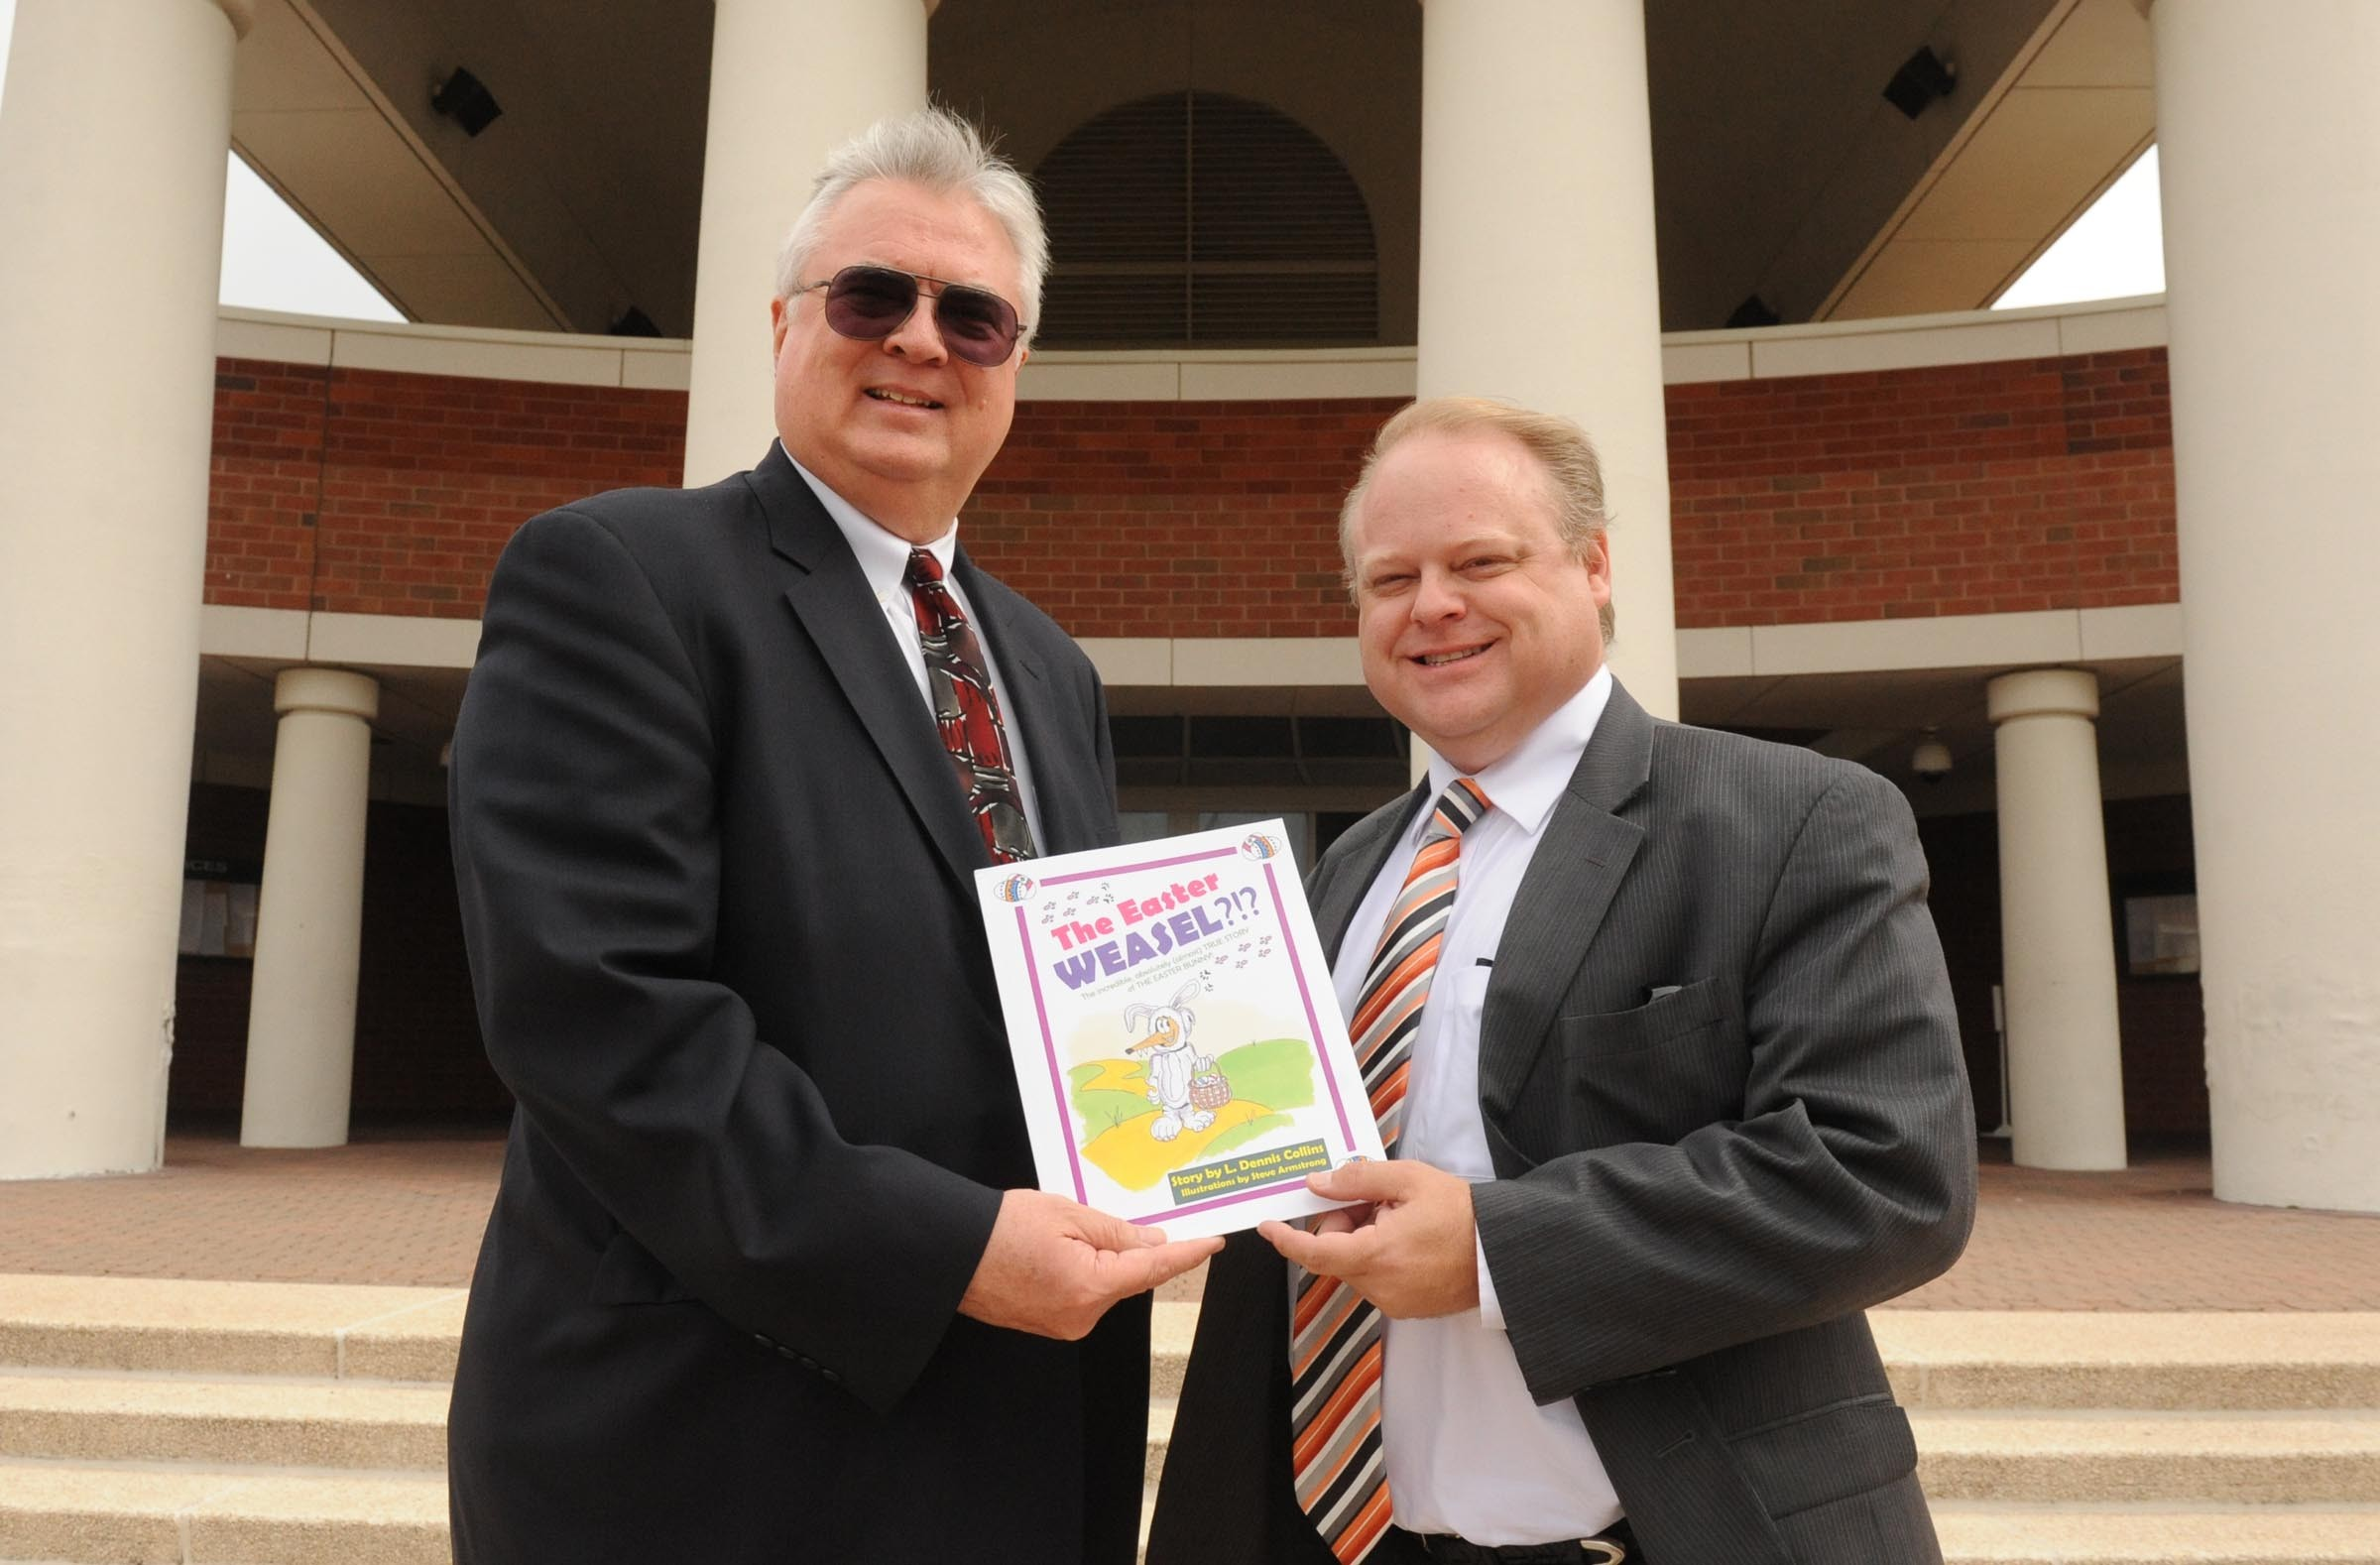 """Most people don't even know where the Easter Bunny comes from,"" says Chesterfield defense attorney Stephen Armstrong (right) and longtime prosecutor Dennis Collins, shown here holding up a copy of their children's book, ""The Easter Weasel."" - SCOTT ELMQUIST"